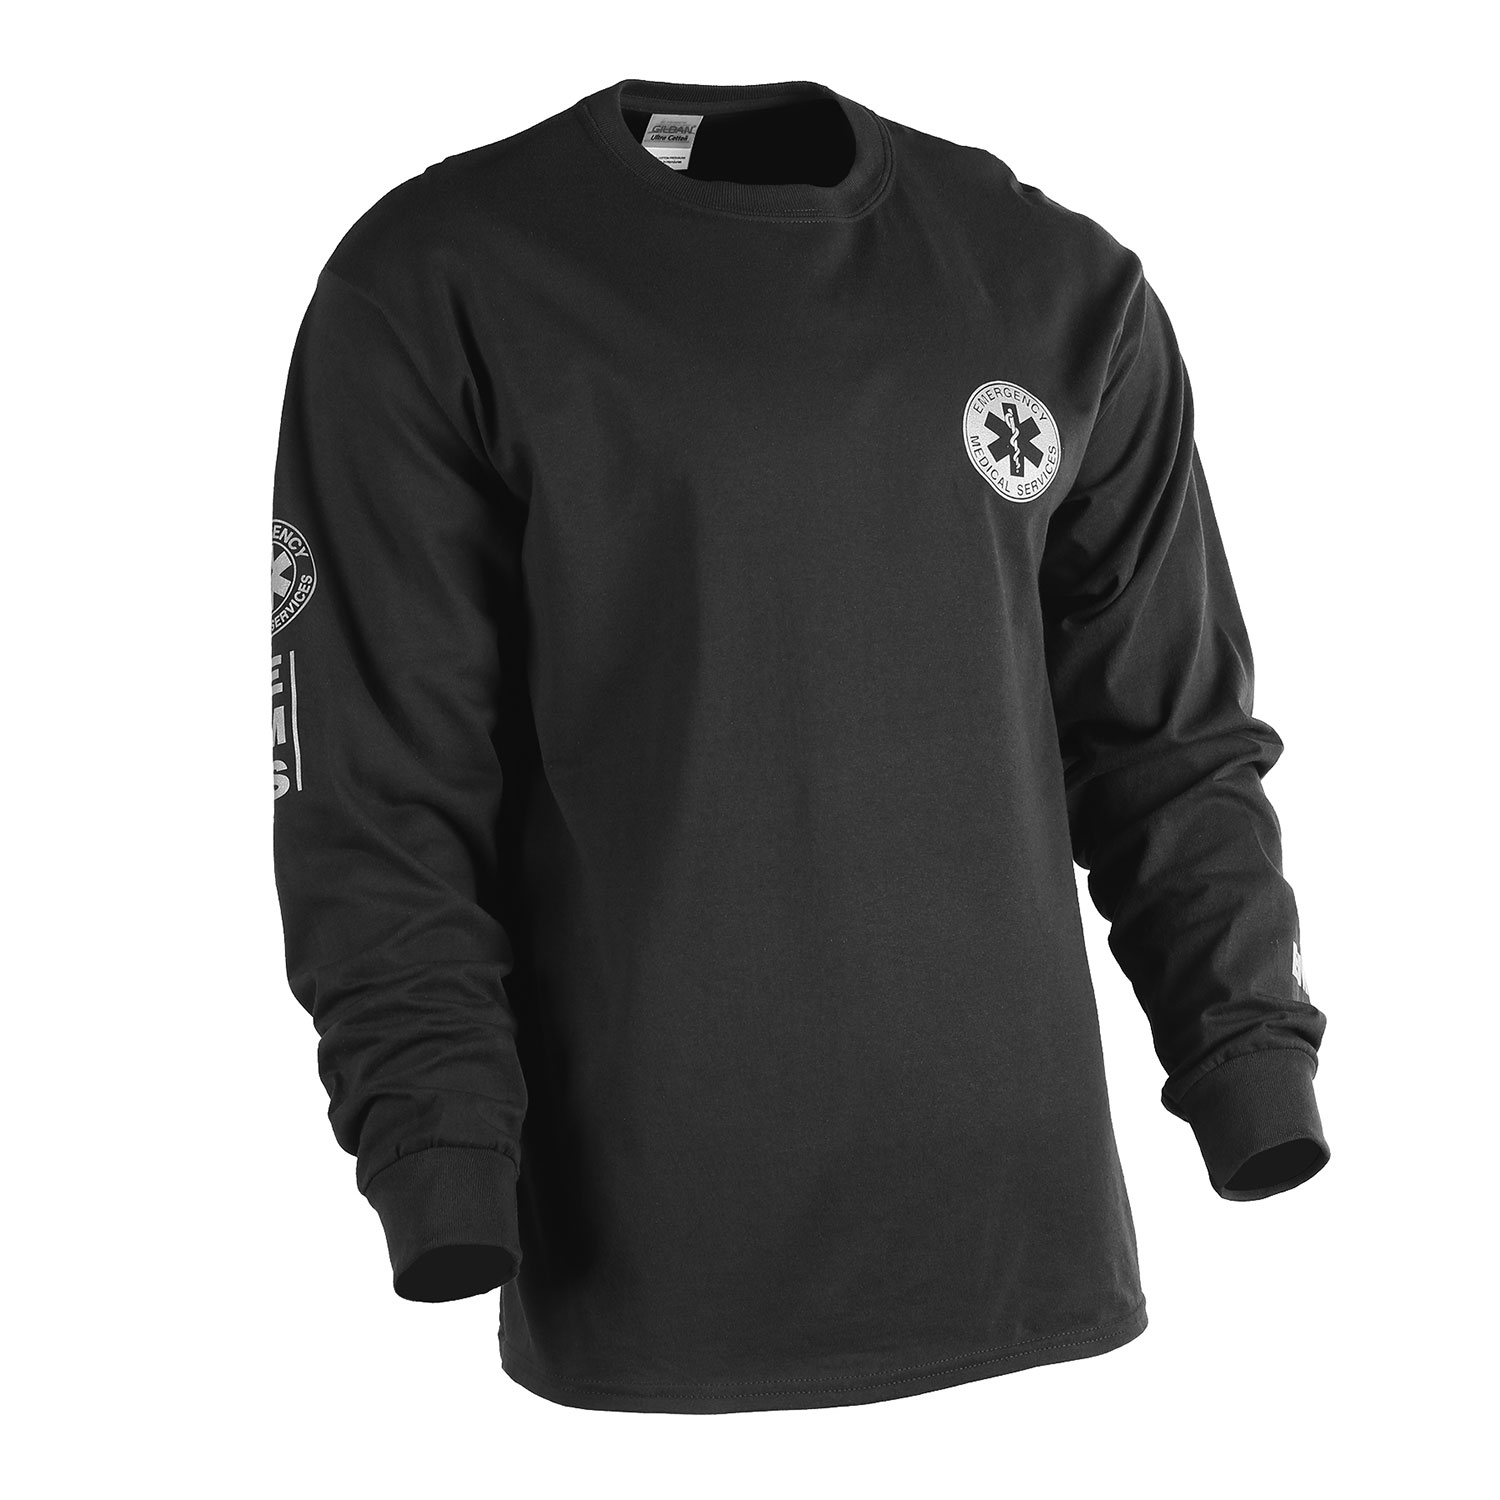 Galls 360 Reflective Long Sleeve T Shirt